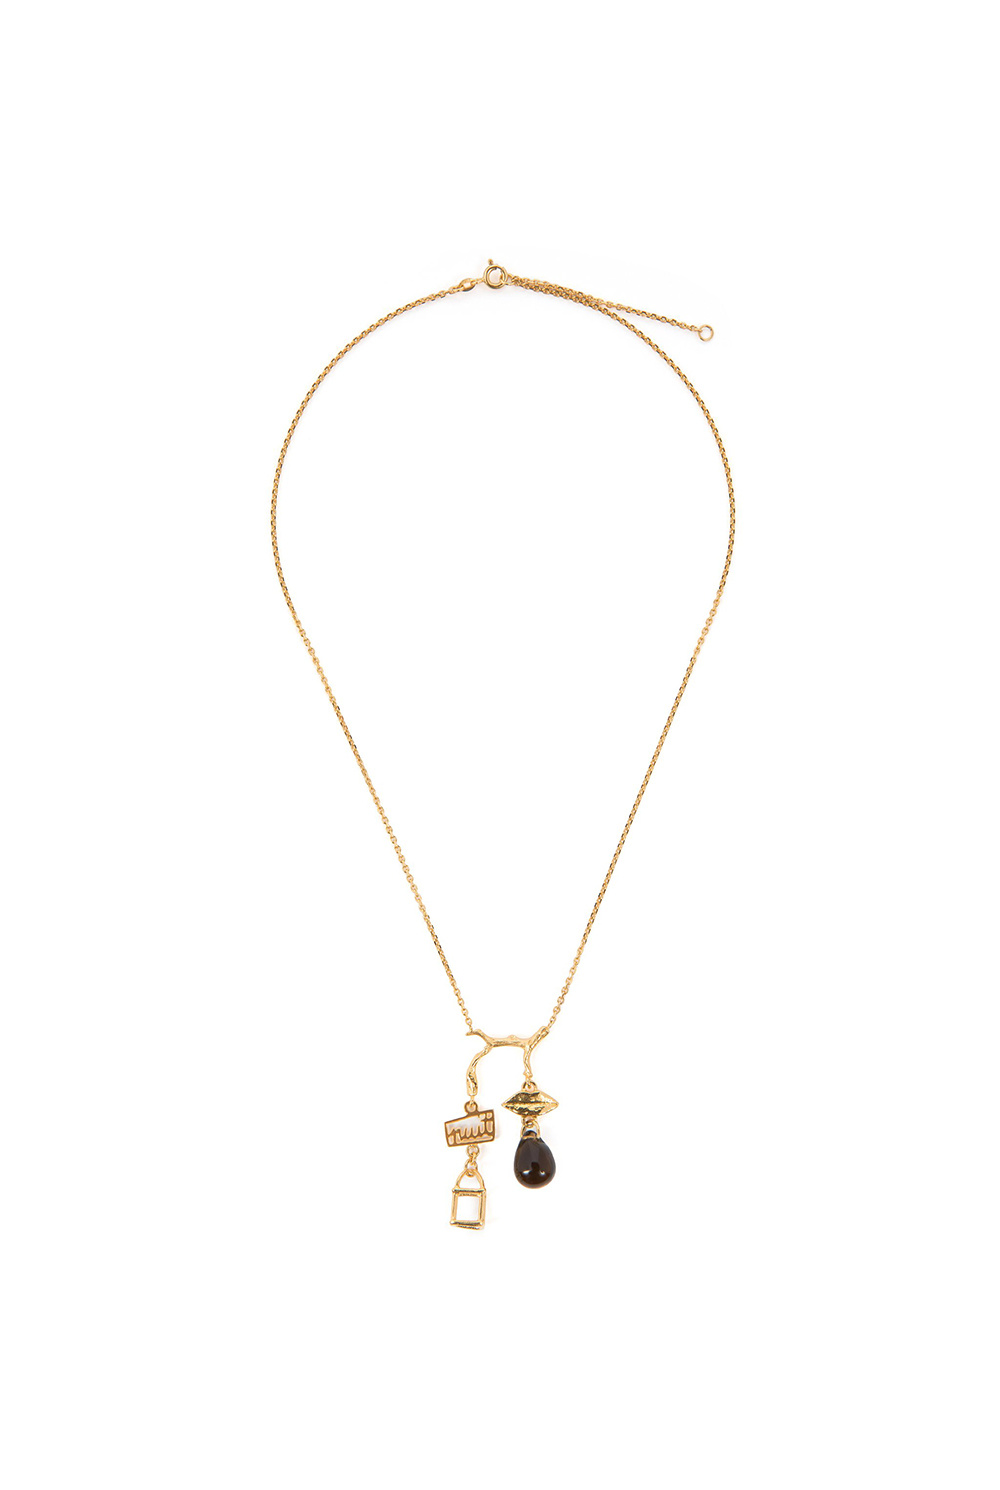 Charm cage necklace goldplated